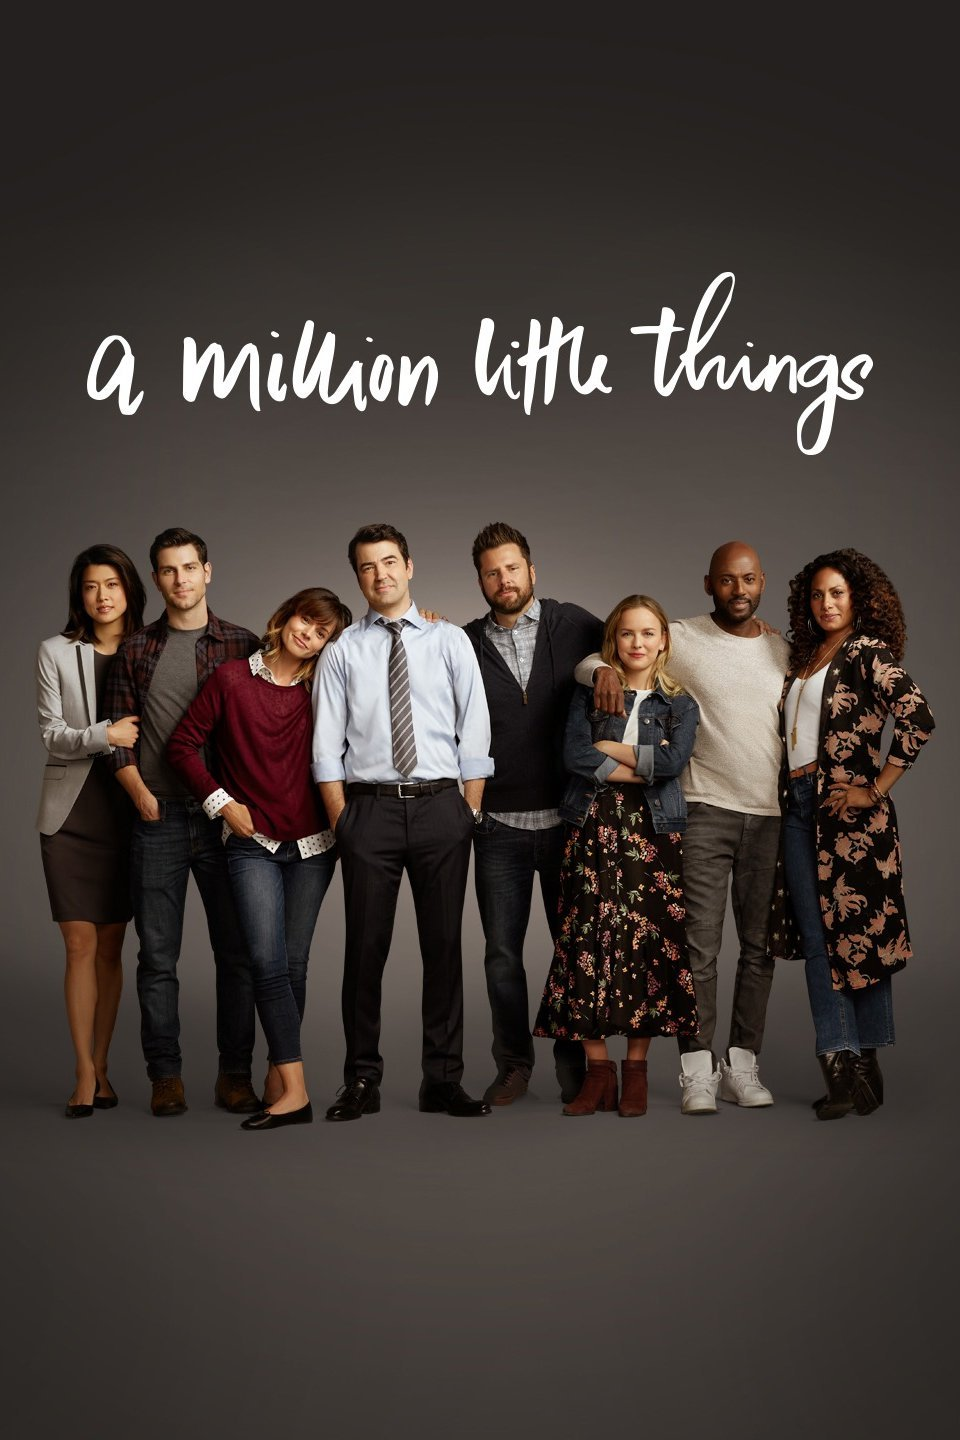 A Million Little Things - Season 2 Episode 13 - daisy